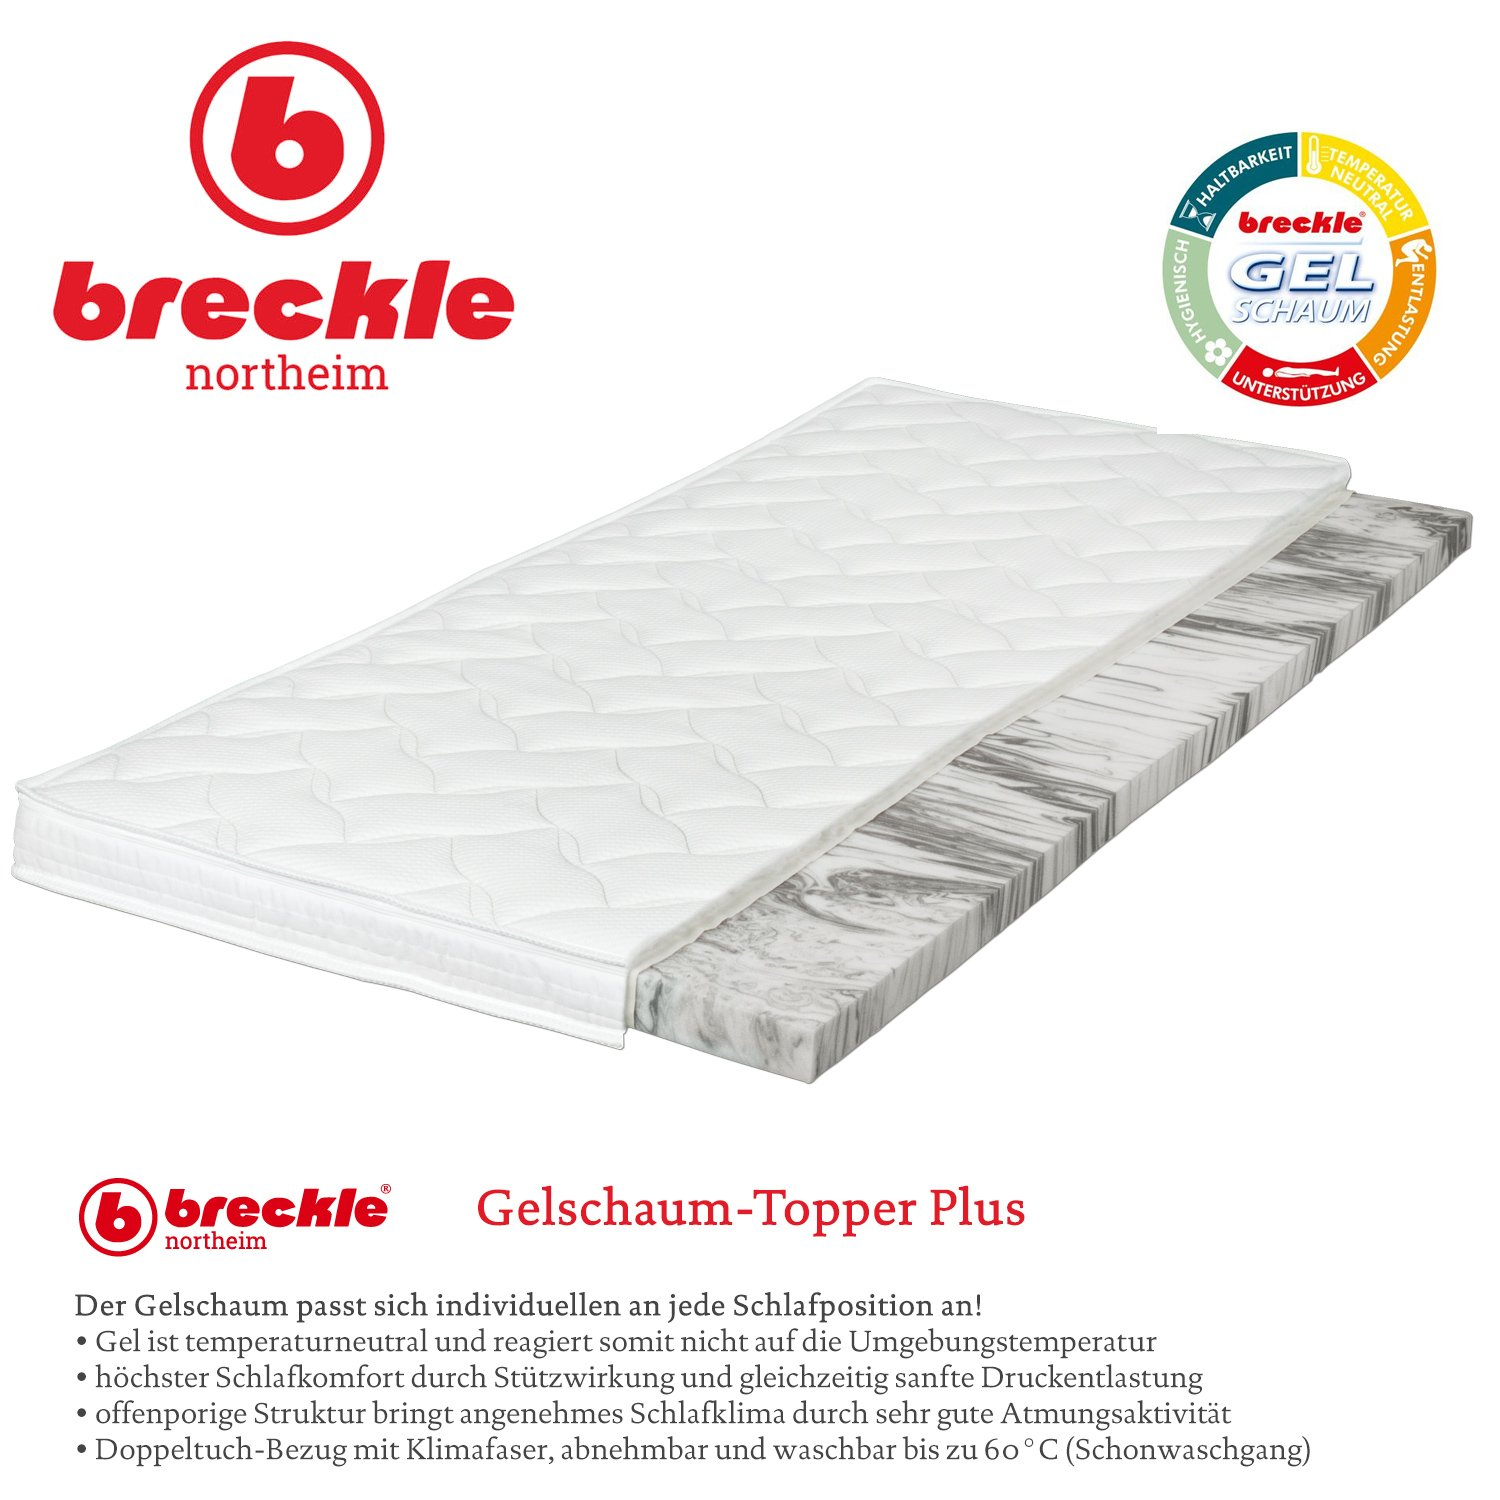 Breckle Gelschaum Topper Plus Grosse 200x200 Cm